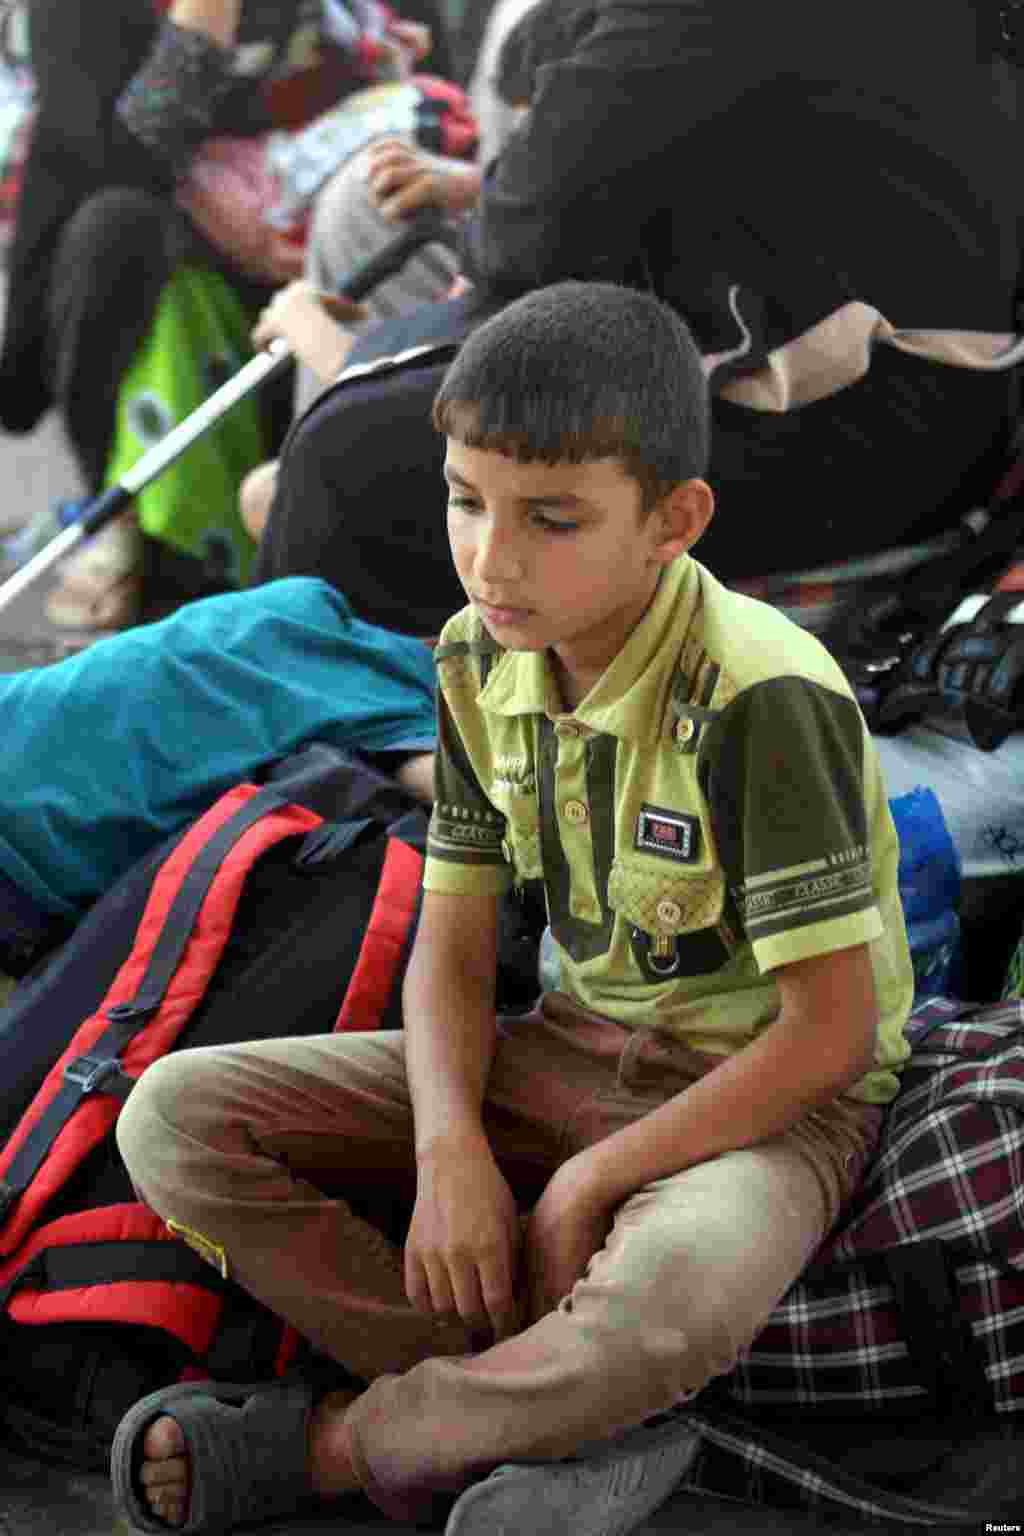 An internally displaced Iraqi Sunni boy sits with his family, who fled the violence in the city of Ramadi, on the outskirts of Baghdad, May 19, 2015.